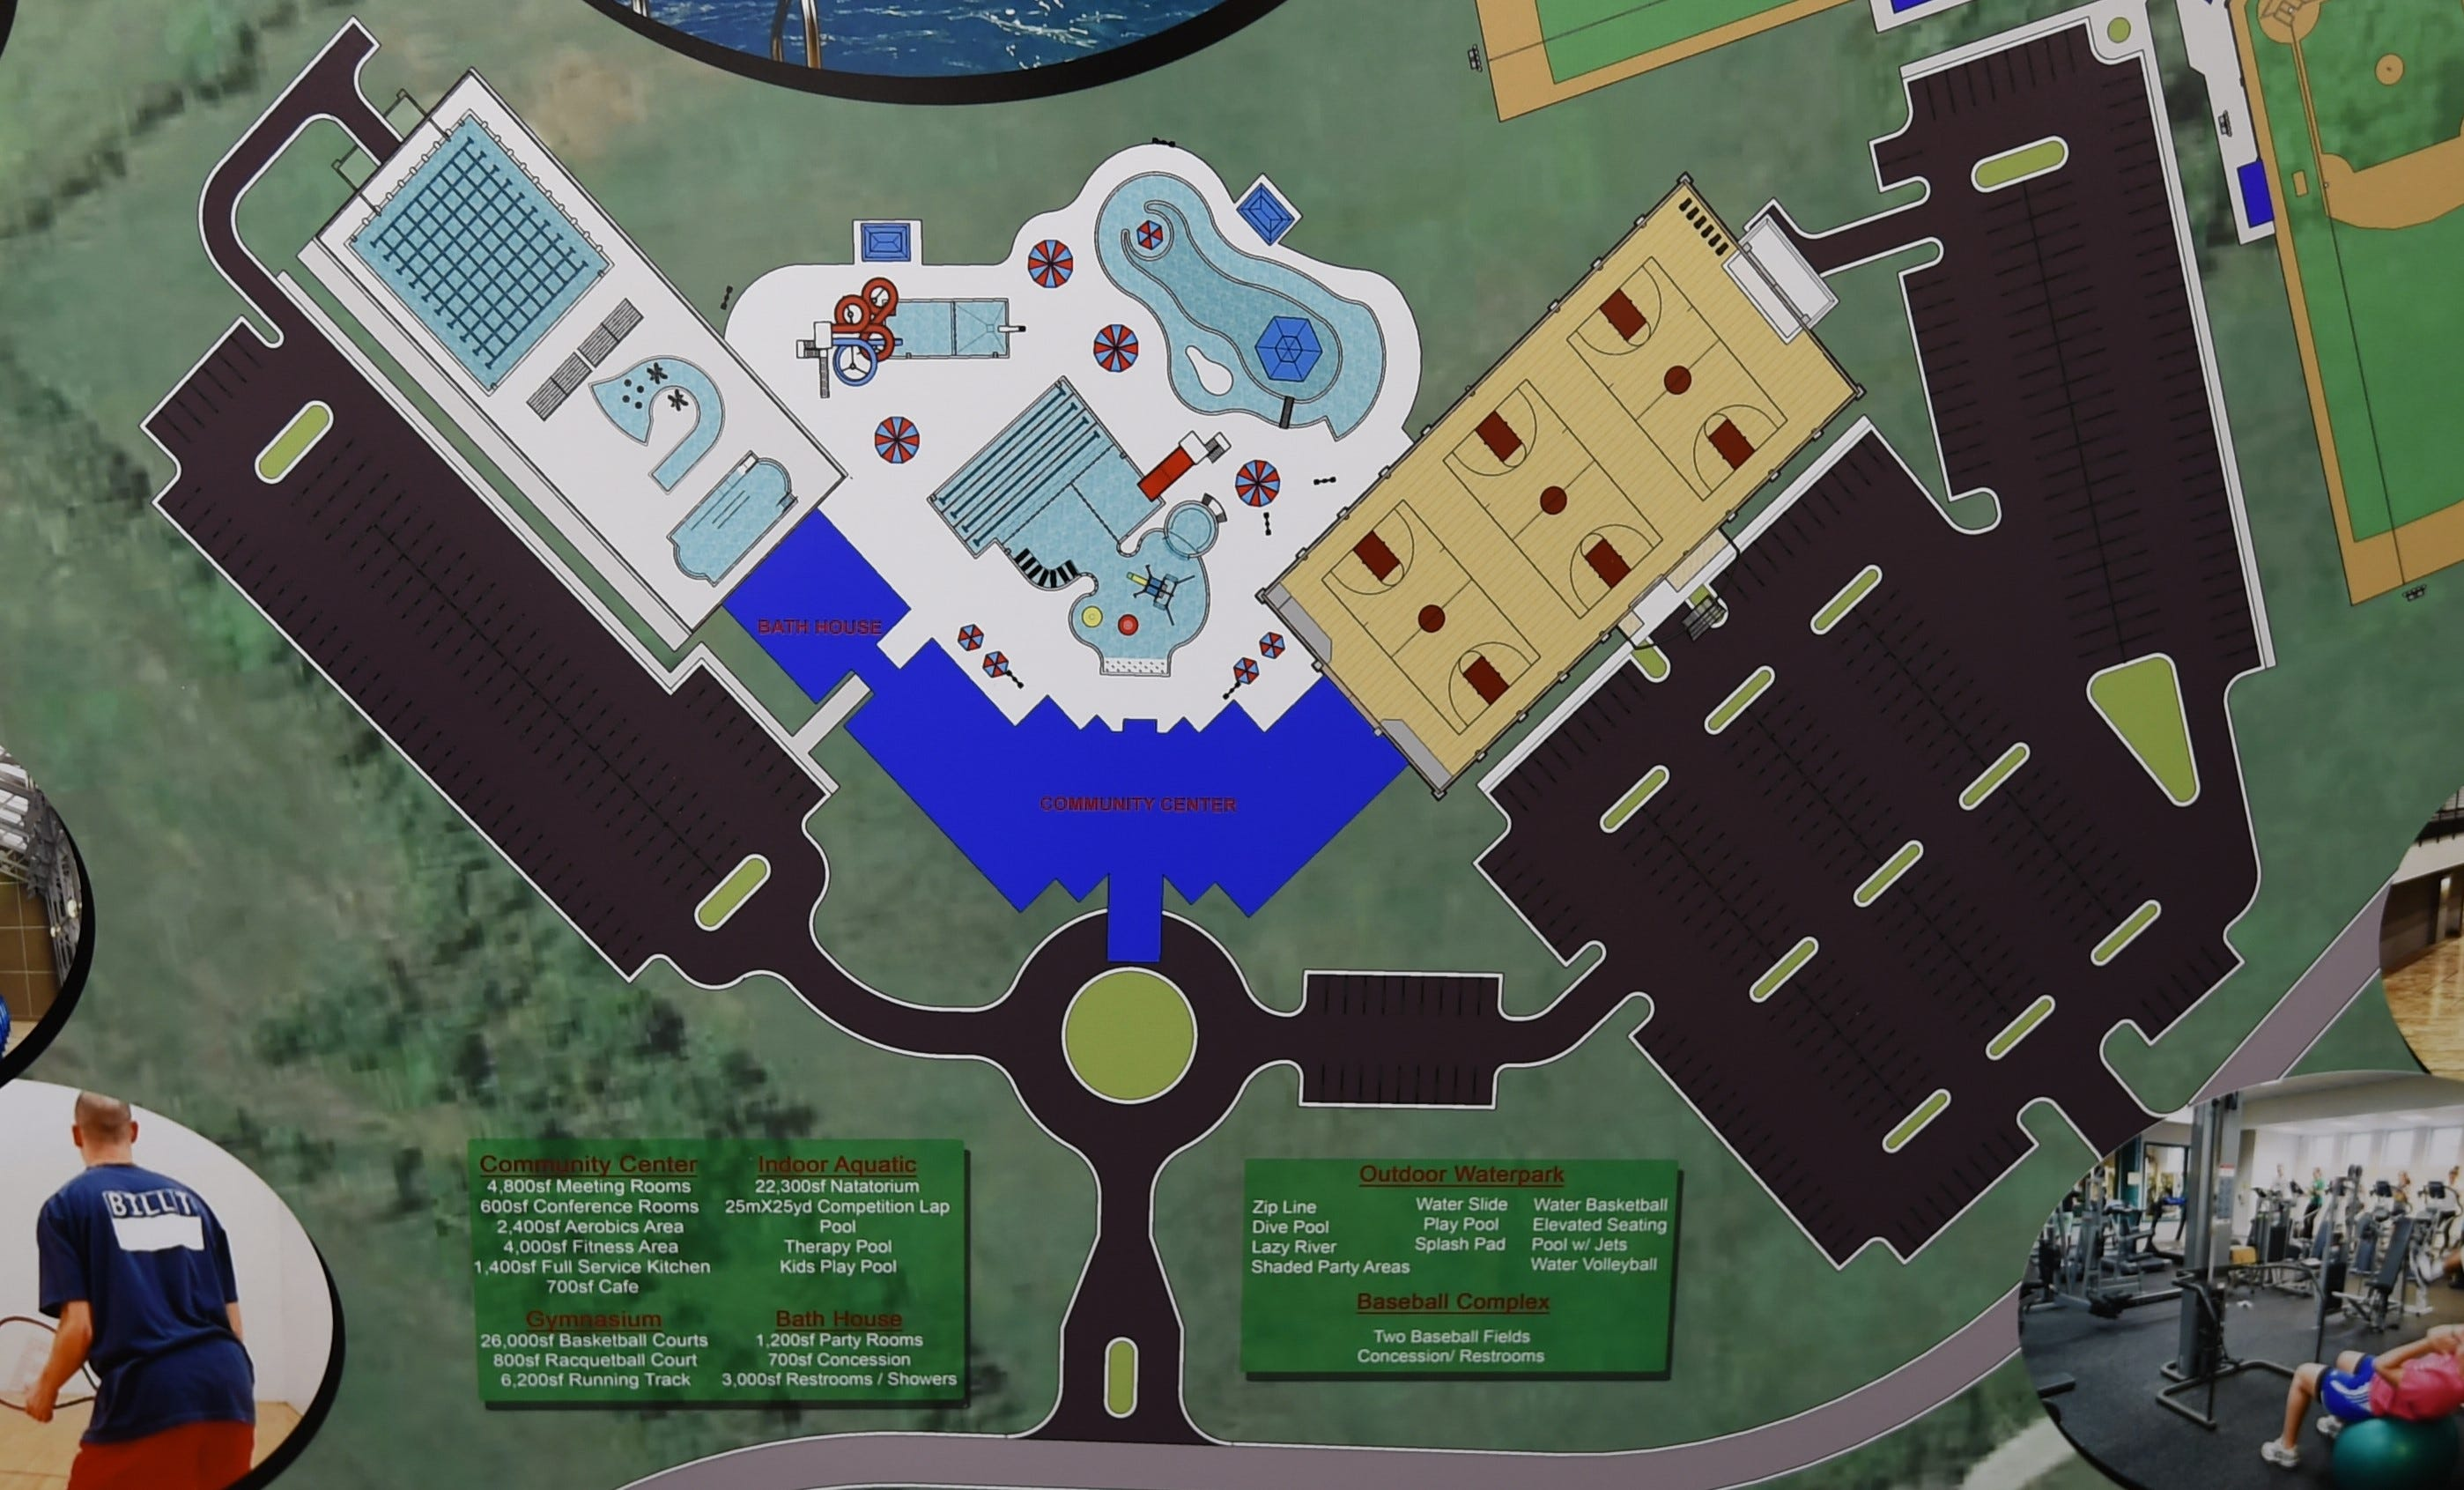 Public Meeting Scheduled To Discuss Aquatic Facility And Community Center